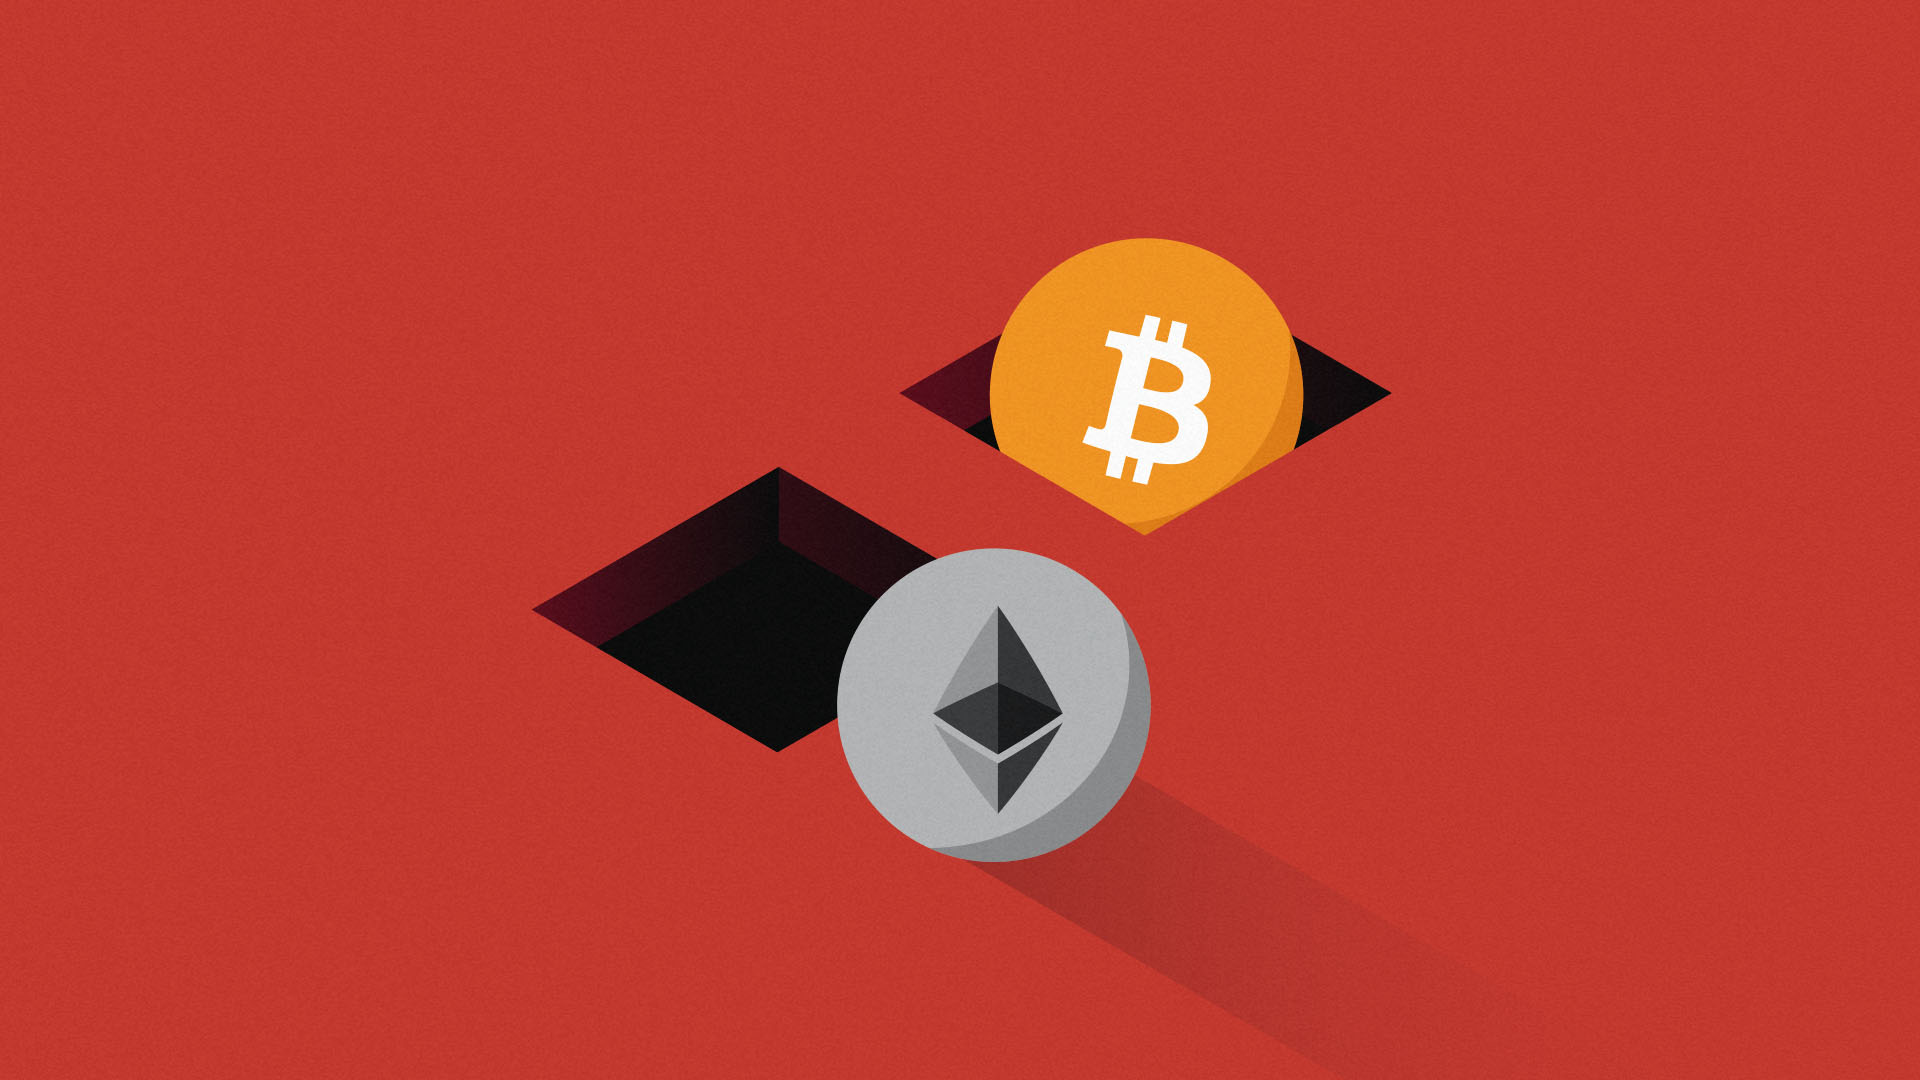 The idea that Ethereum should have value because it does things that Bitcoin cannot is extremely misleading, argues Kyle Torpey.